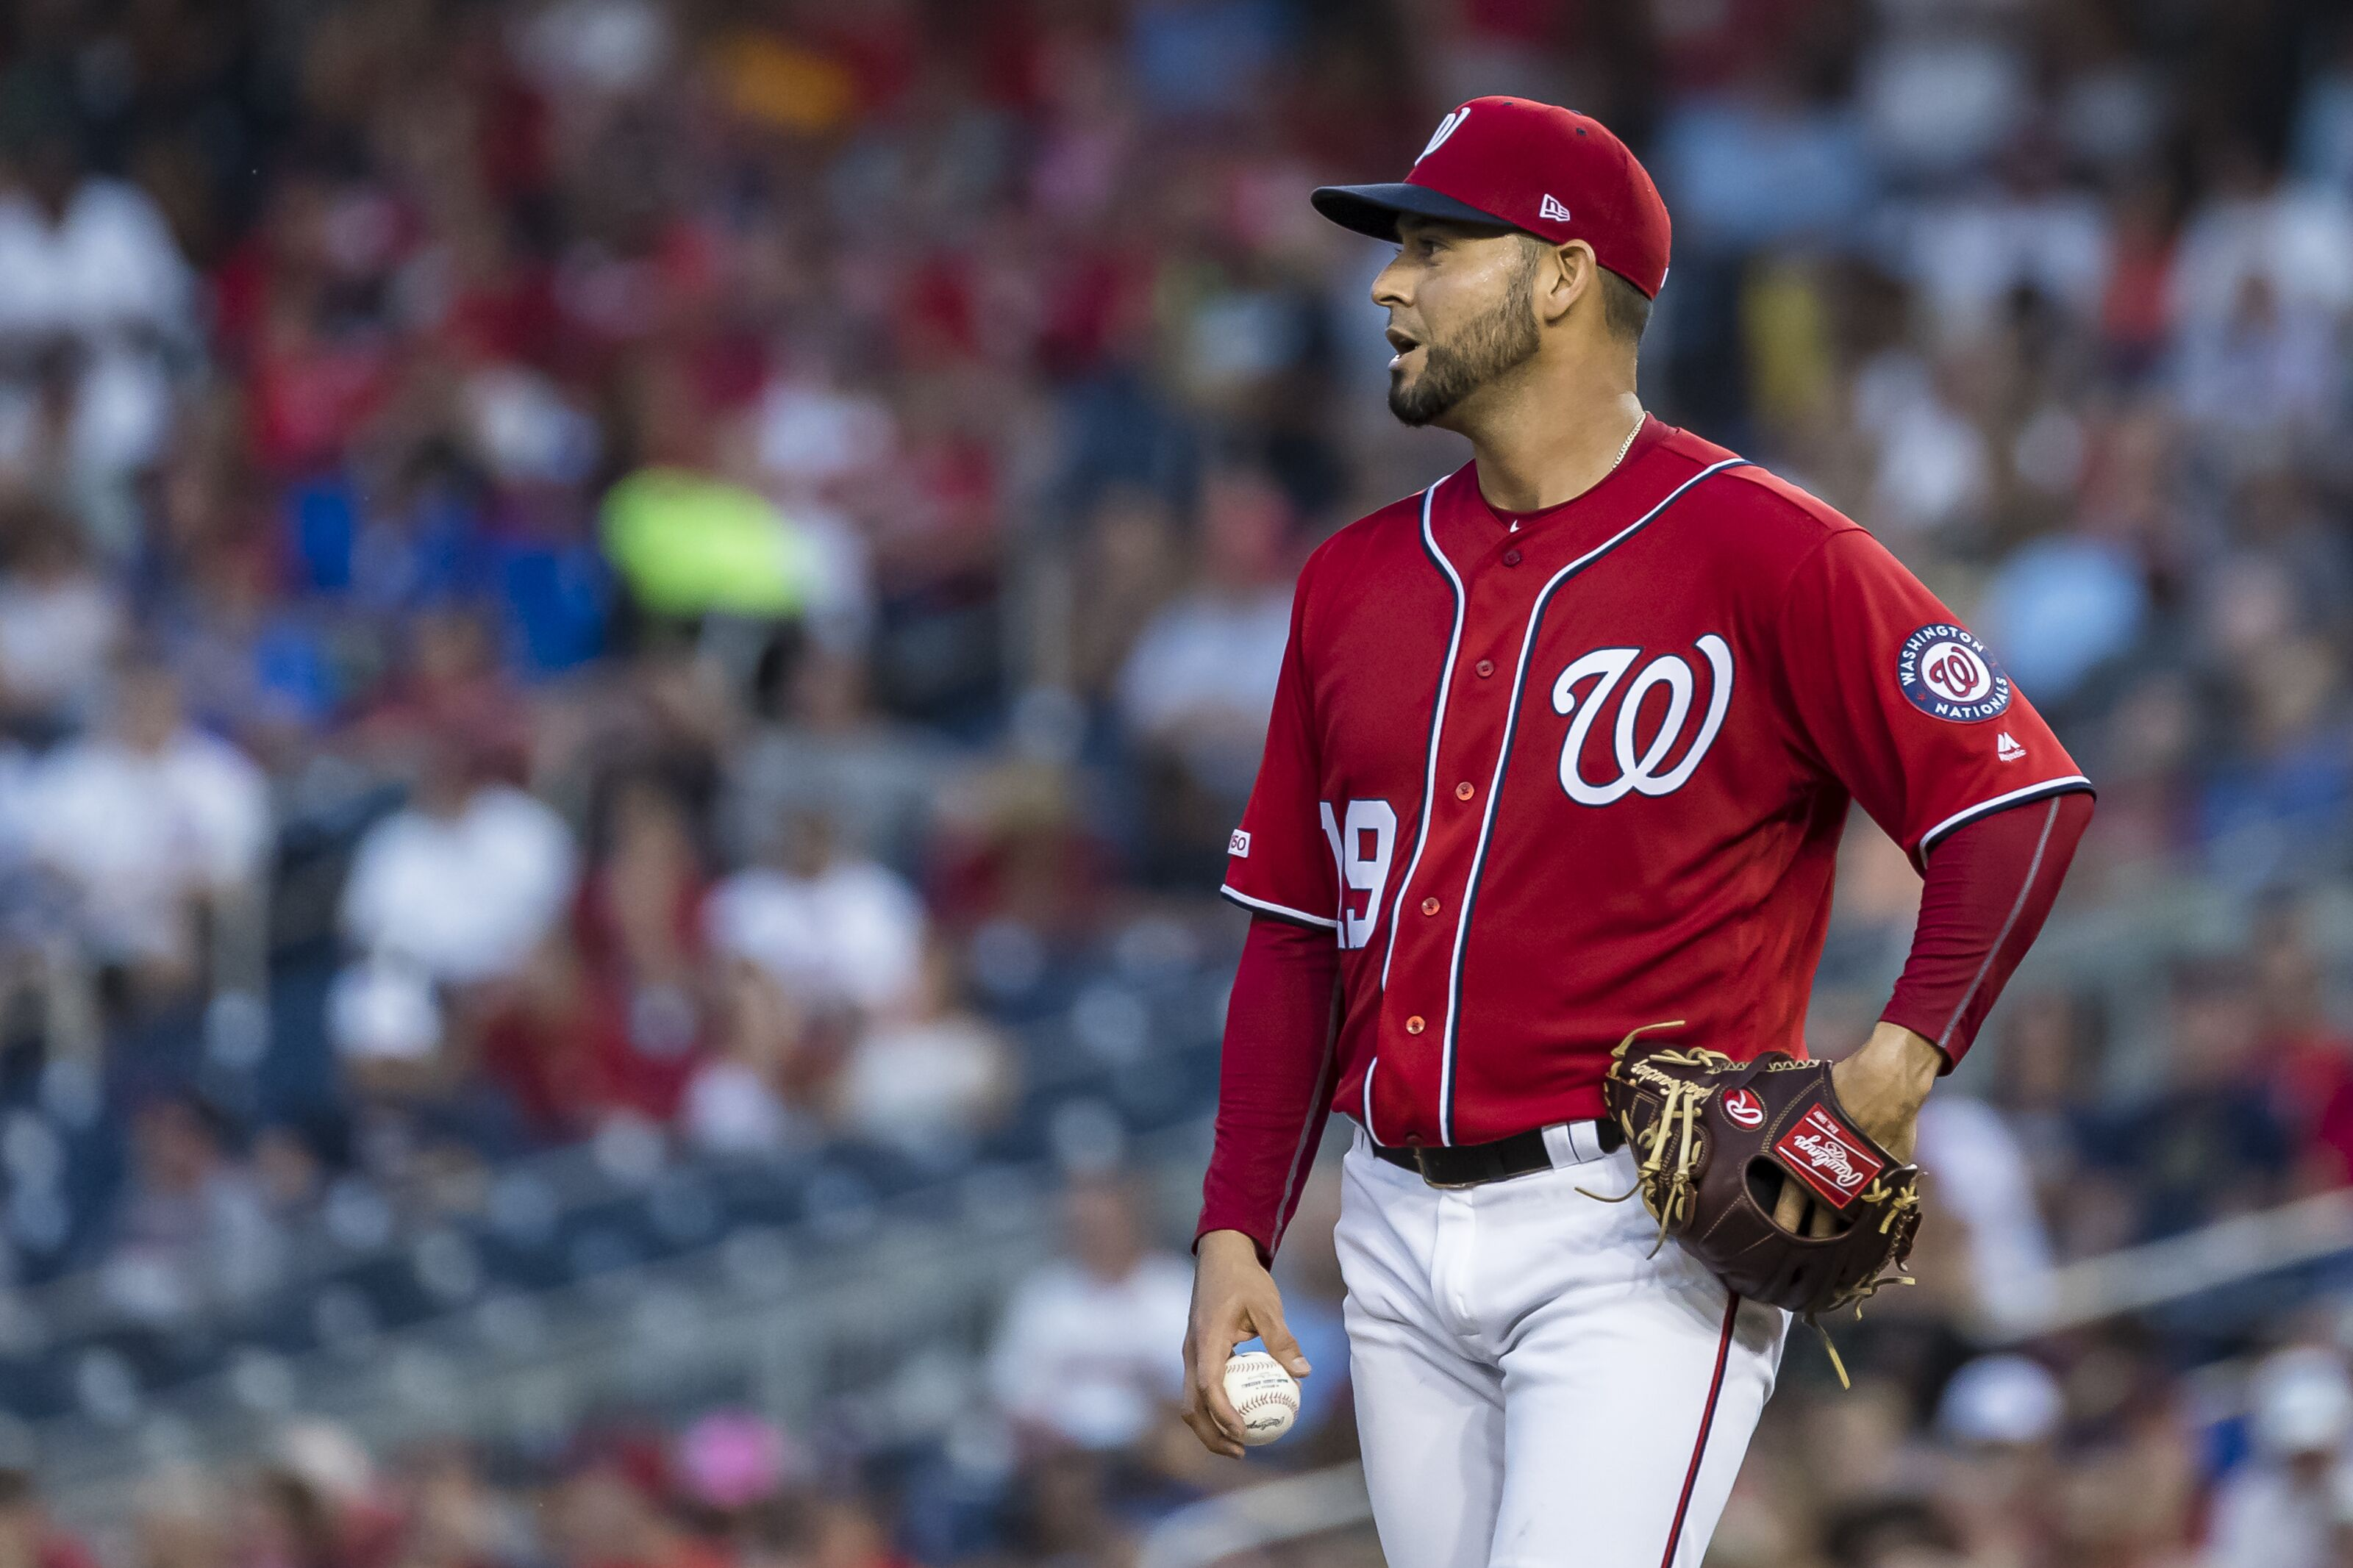 Washington Nationals: Extra Innings Game Could Have Dire Effects